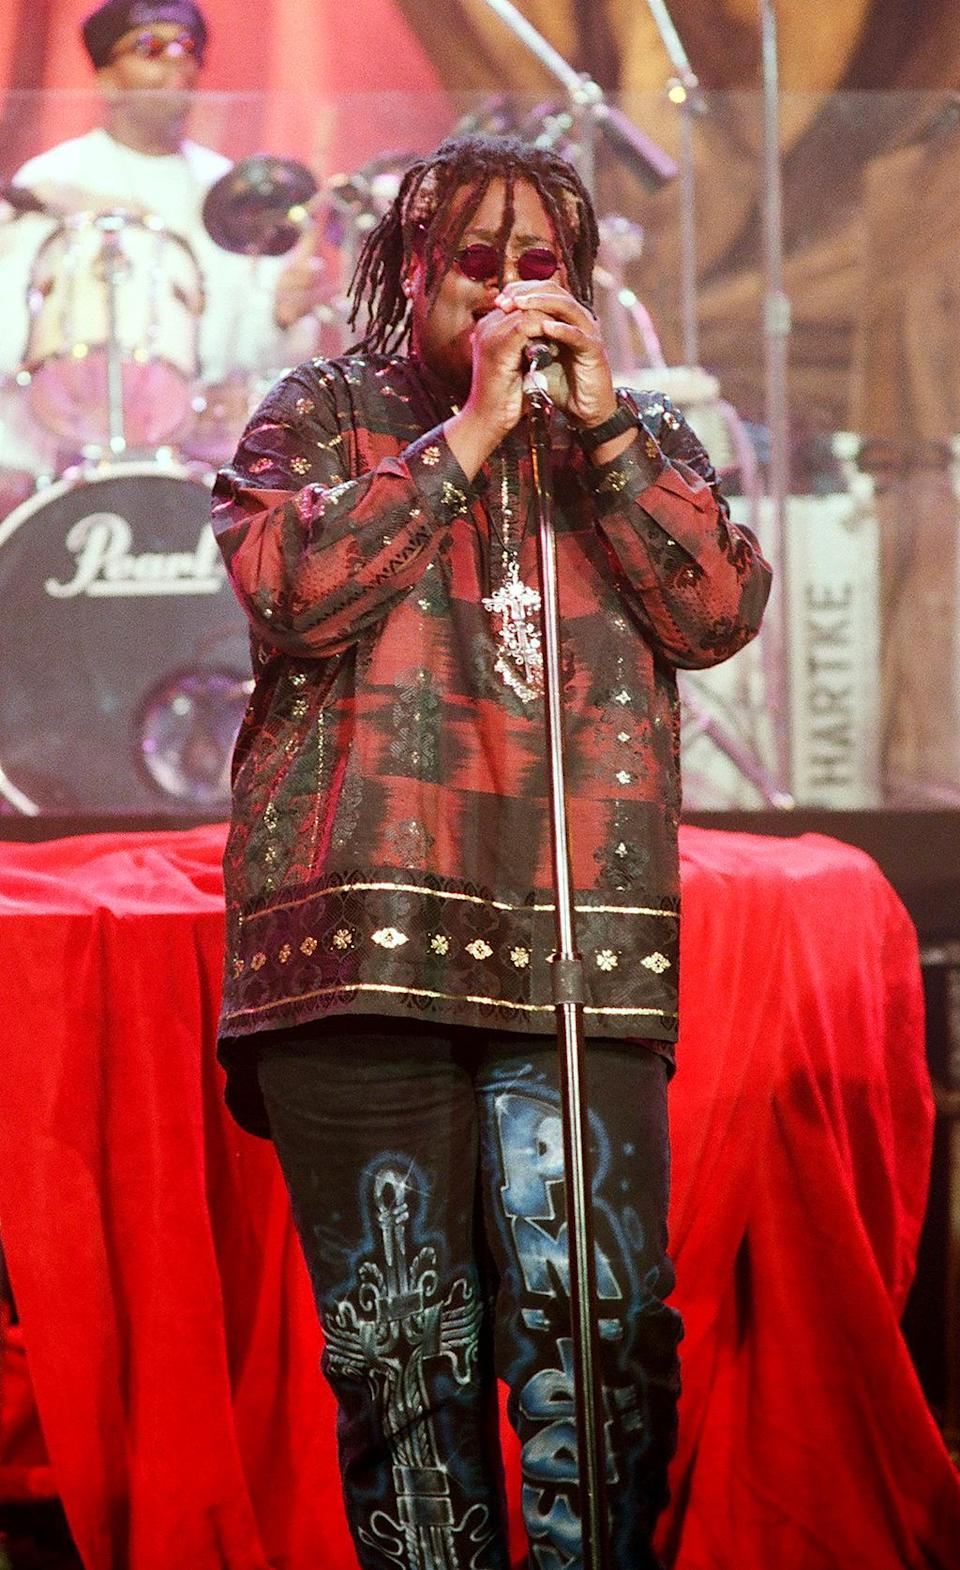 Attrell Stephen Cordes, Jr., aka Prince Be, was the lead singer of pioneering hip-hop group P.M. Dawn. He died from renal failure, a complication of his diabetes, on June 17. He was 46. (Photo: Getty Images)